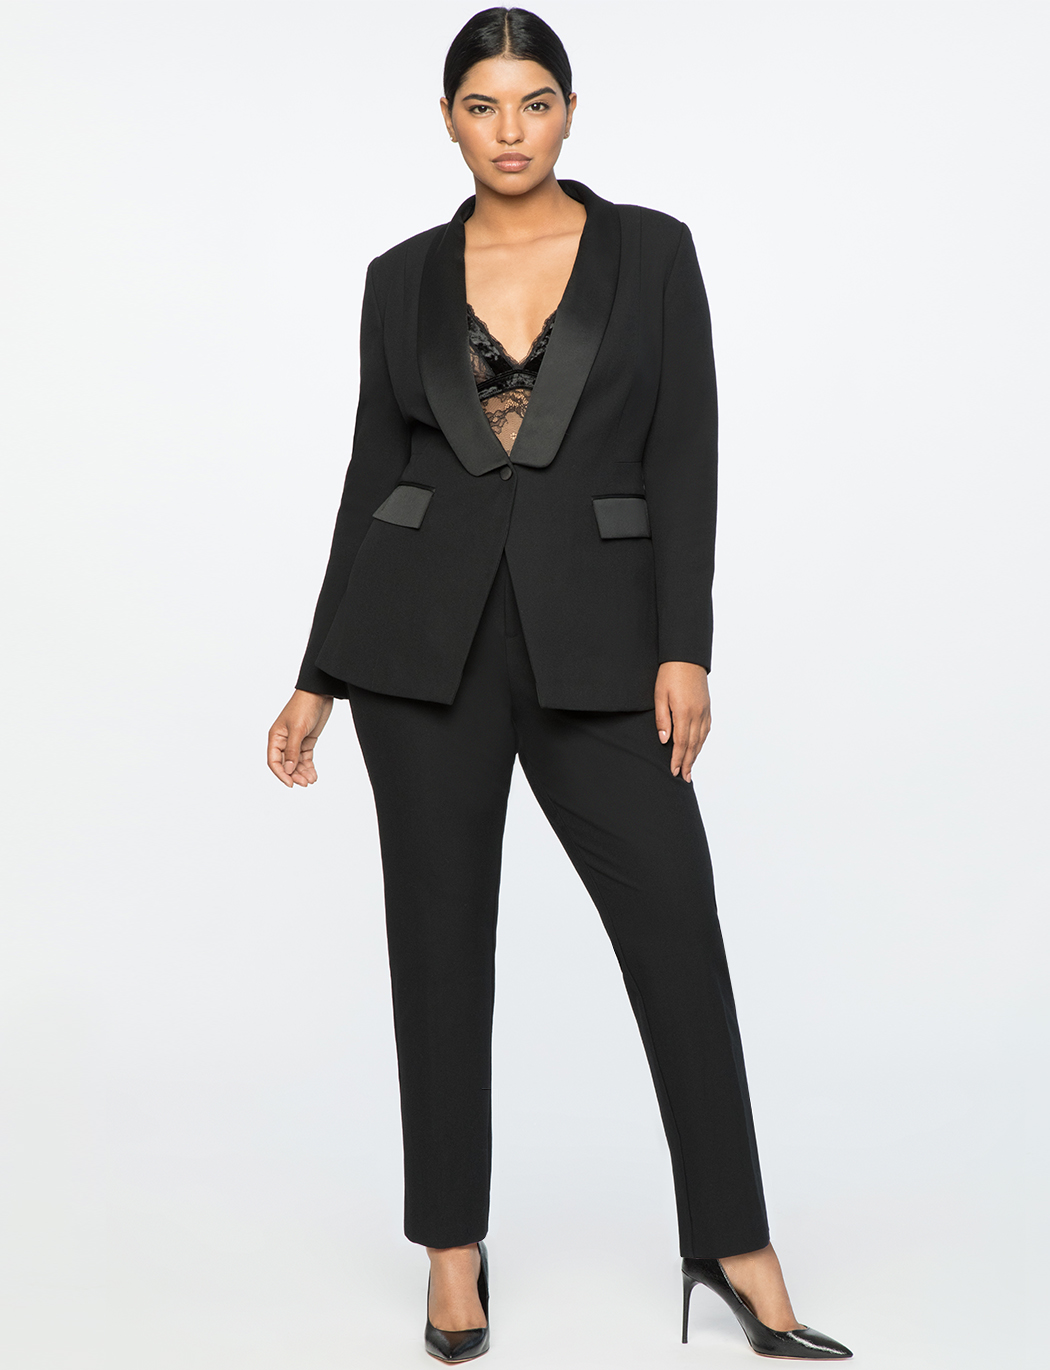 Jason Wu X ELOQUII Tux Pant Totally Black